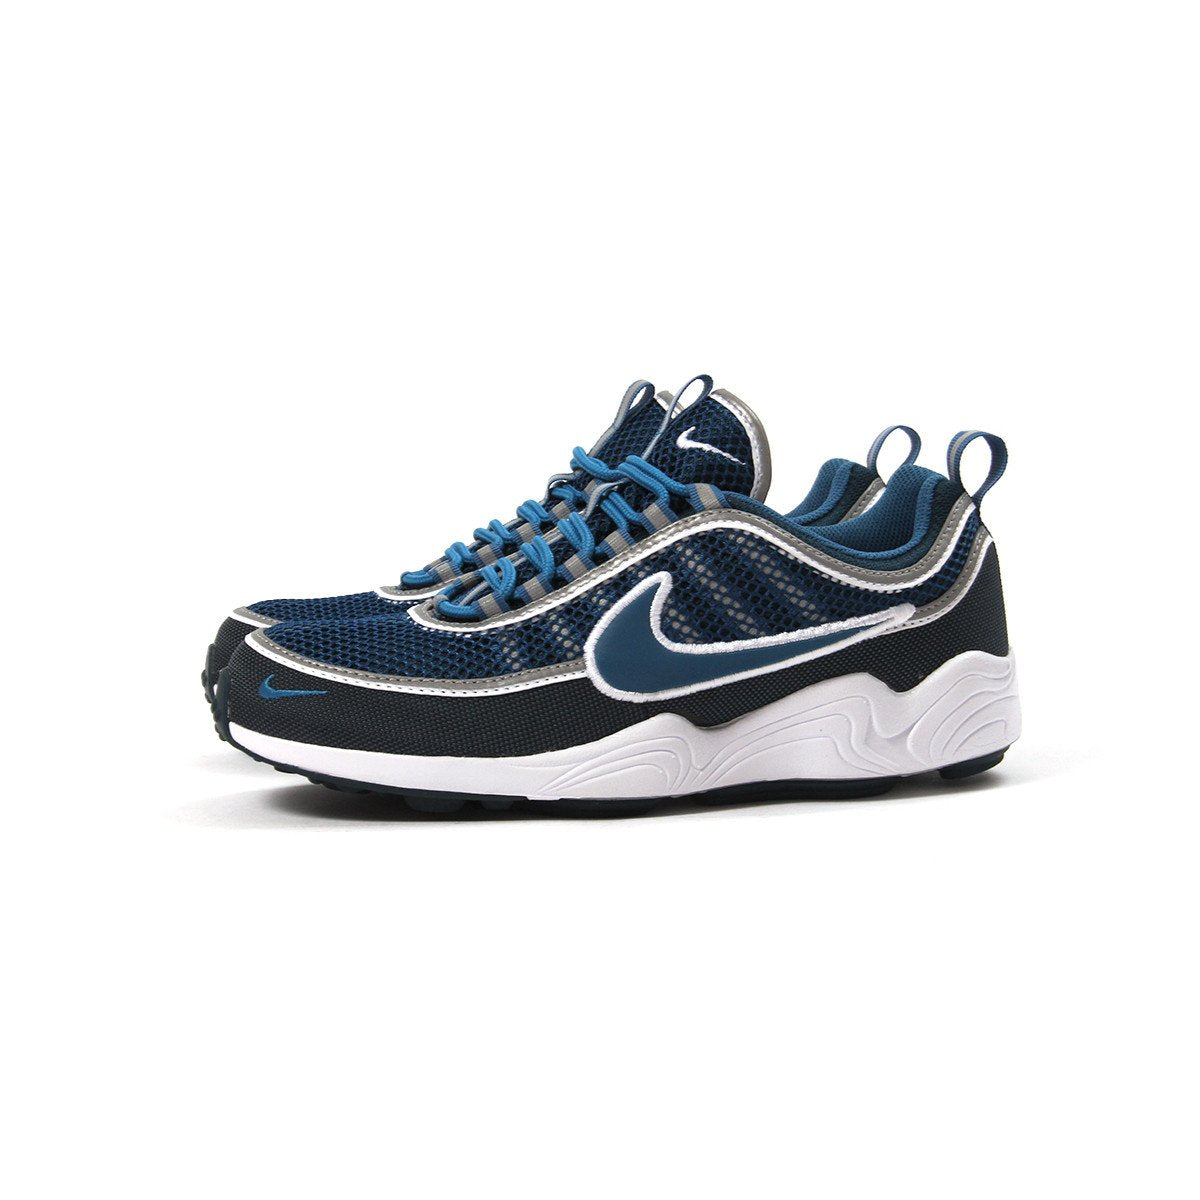 outlet store 578f8 6a1bc ConceptsIntl   Nike Air Zoom Spiridon  16 (Armory Navy Industrial Blue-White )